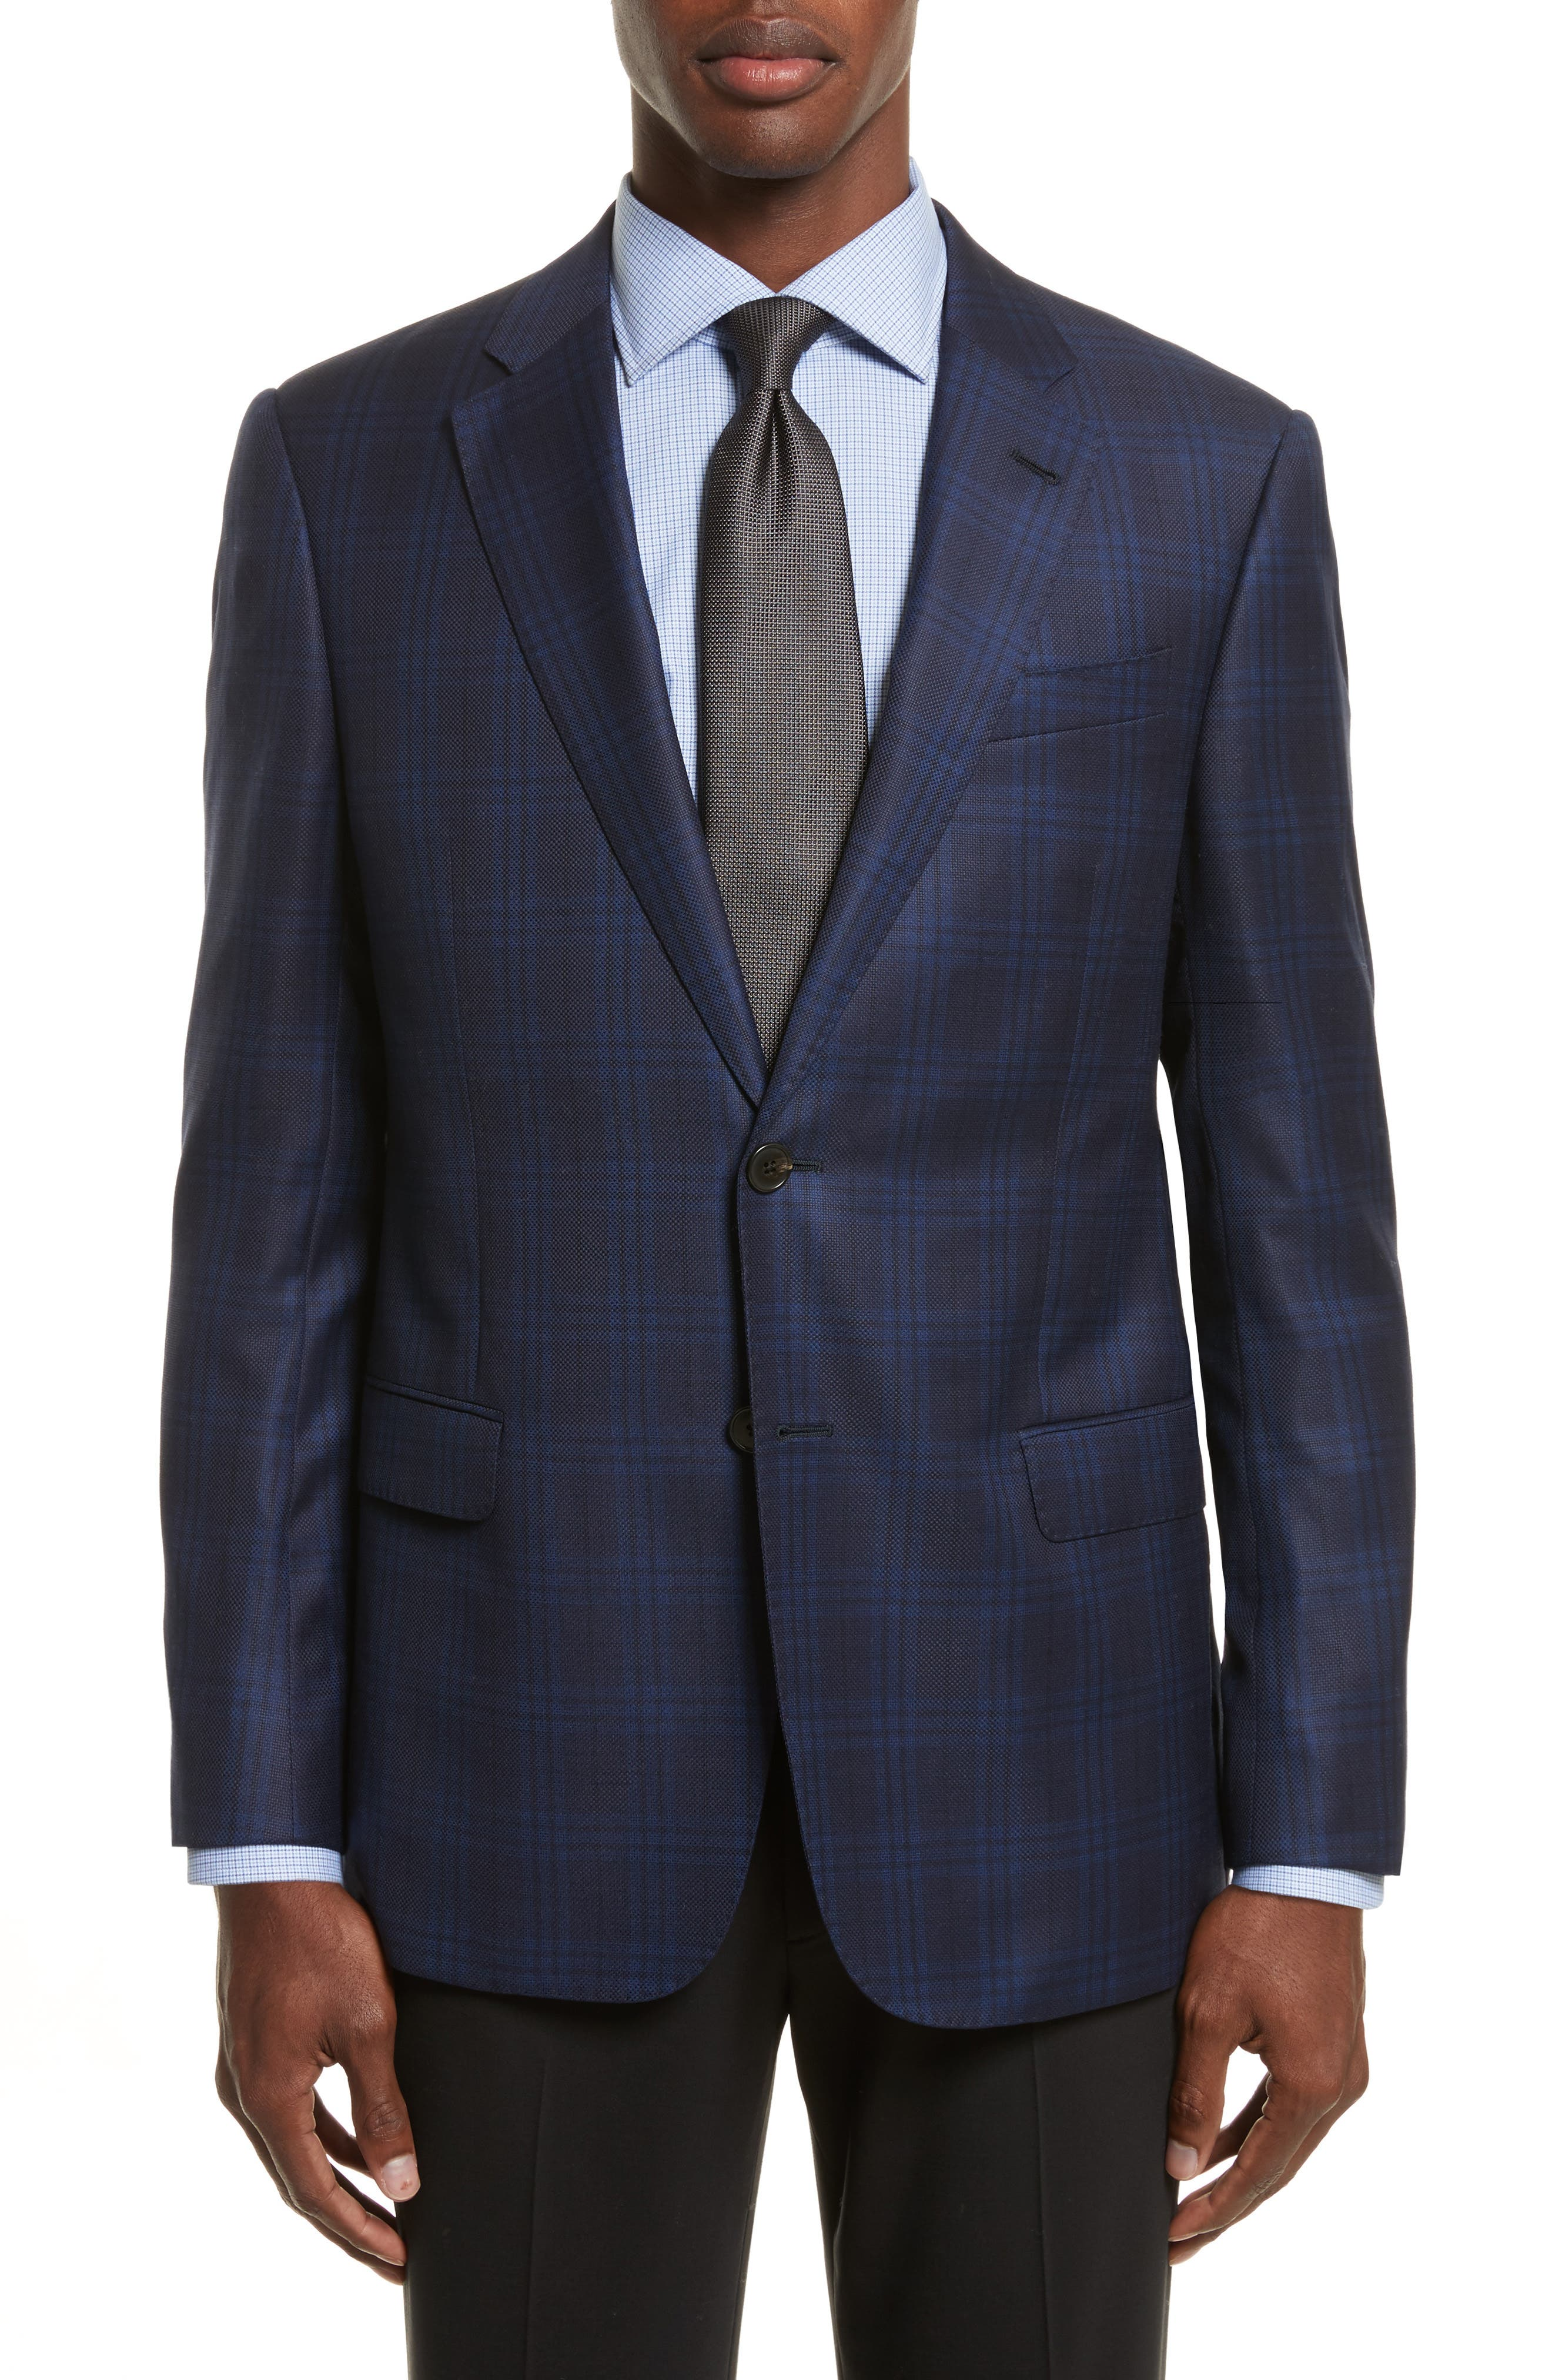 G-Line Trim Fit Houndstooth Wool Sport Coat,                             Main thumbnail 1, color,                             410